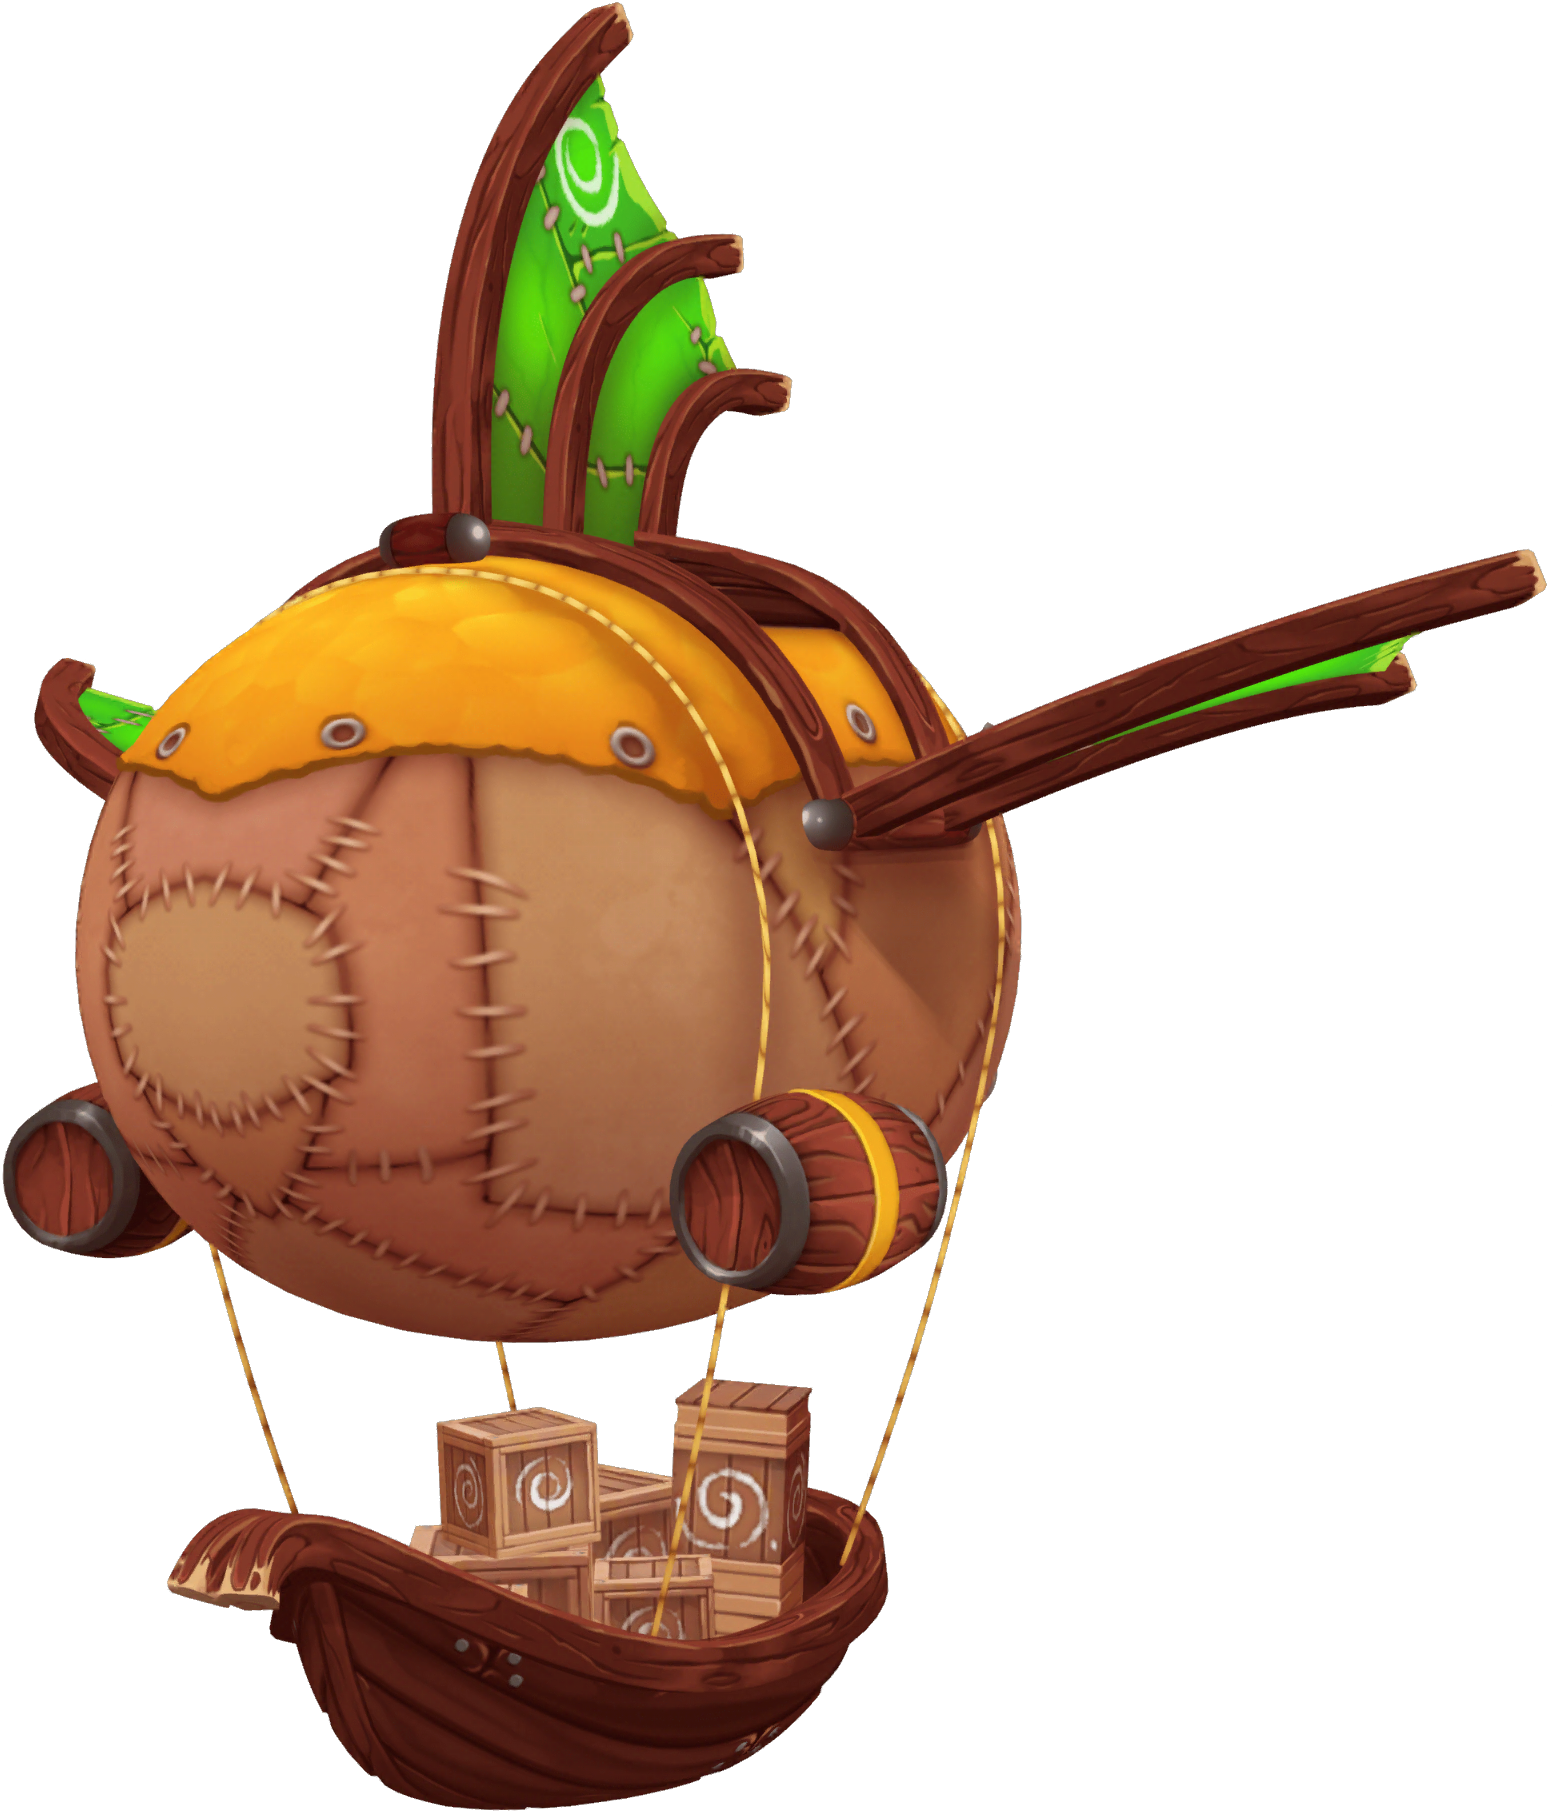 Mechanic clipart hotel maintenance. Skyship my singing monsters